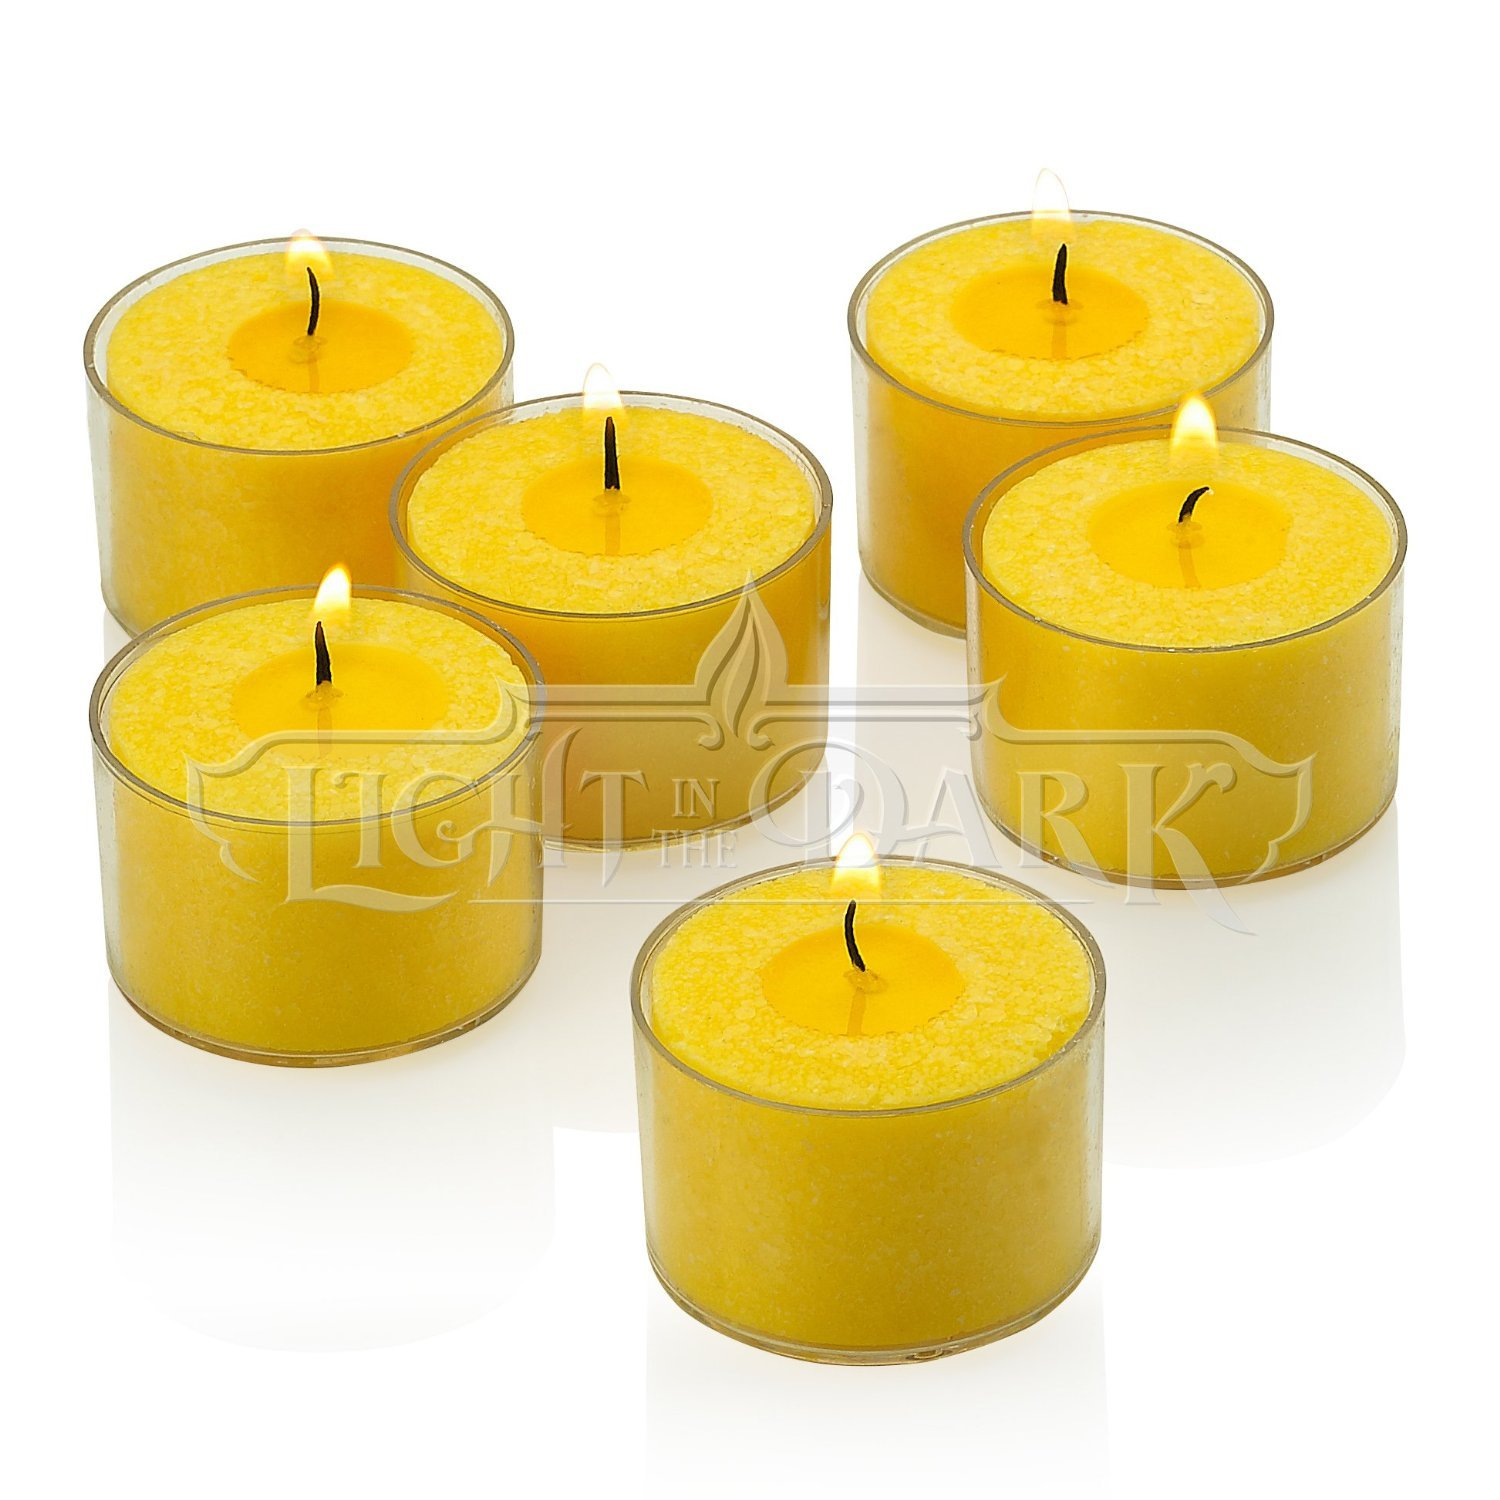 Light In The Dark Set of 36 Yellow Citronella Tealight Candles with Clear Cup Burn 8 Hour - Made from High Scented Citronella to Scare Away Mosquito, Bug and Flies - for Outdoor/Indoor Use by Light In The Dark (Image #1)